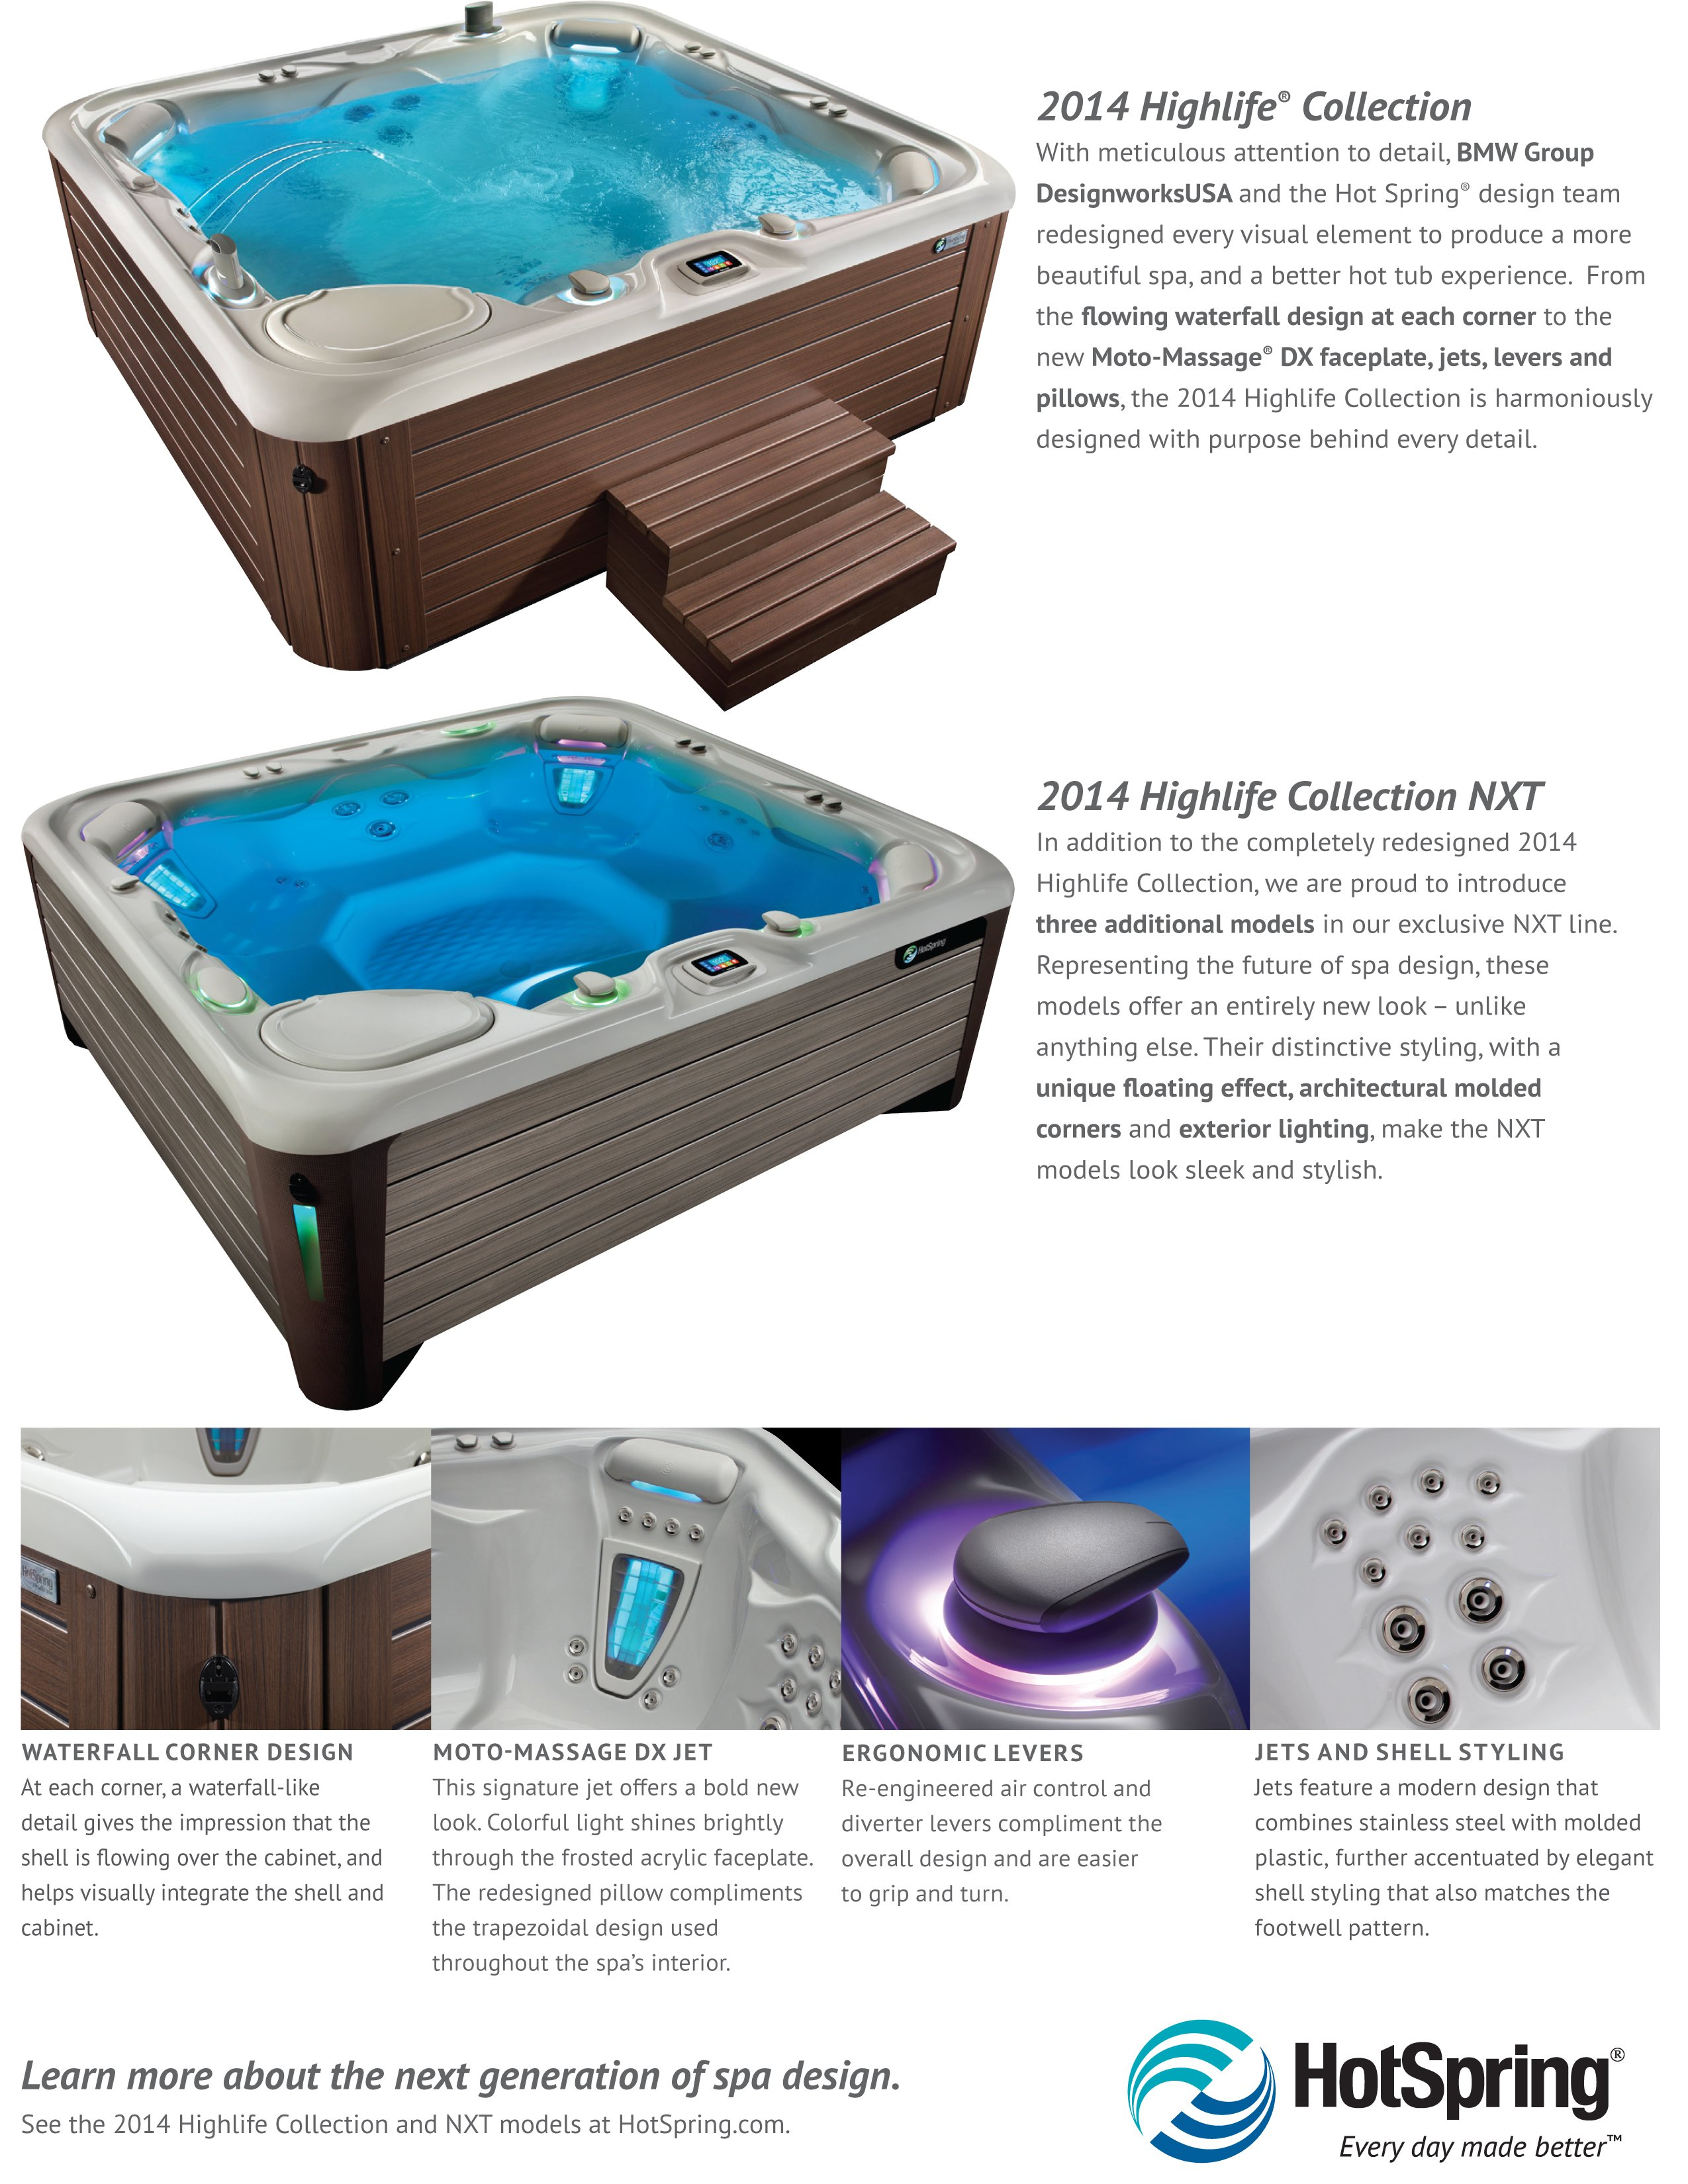 2014 Hot Spring Highlife Collection and NXT Collection Hot